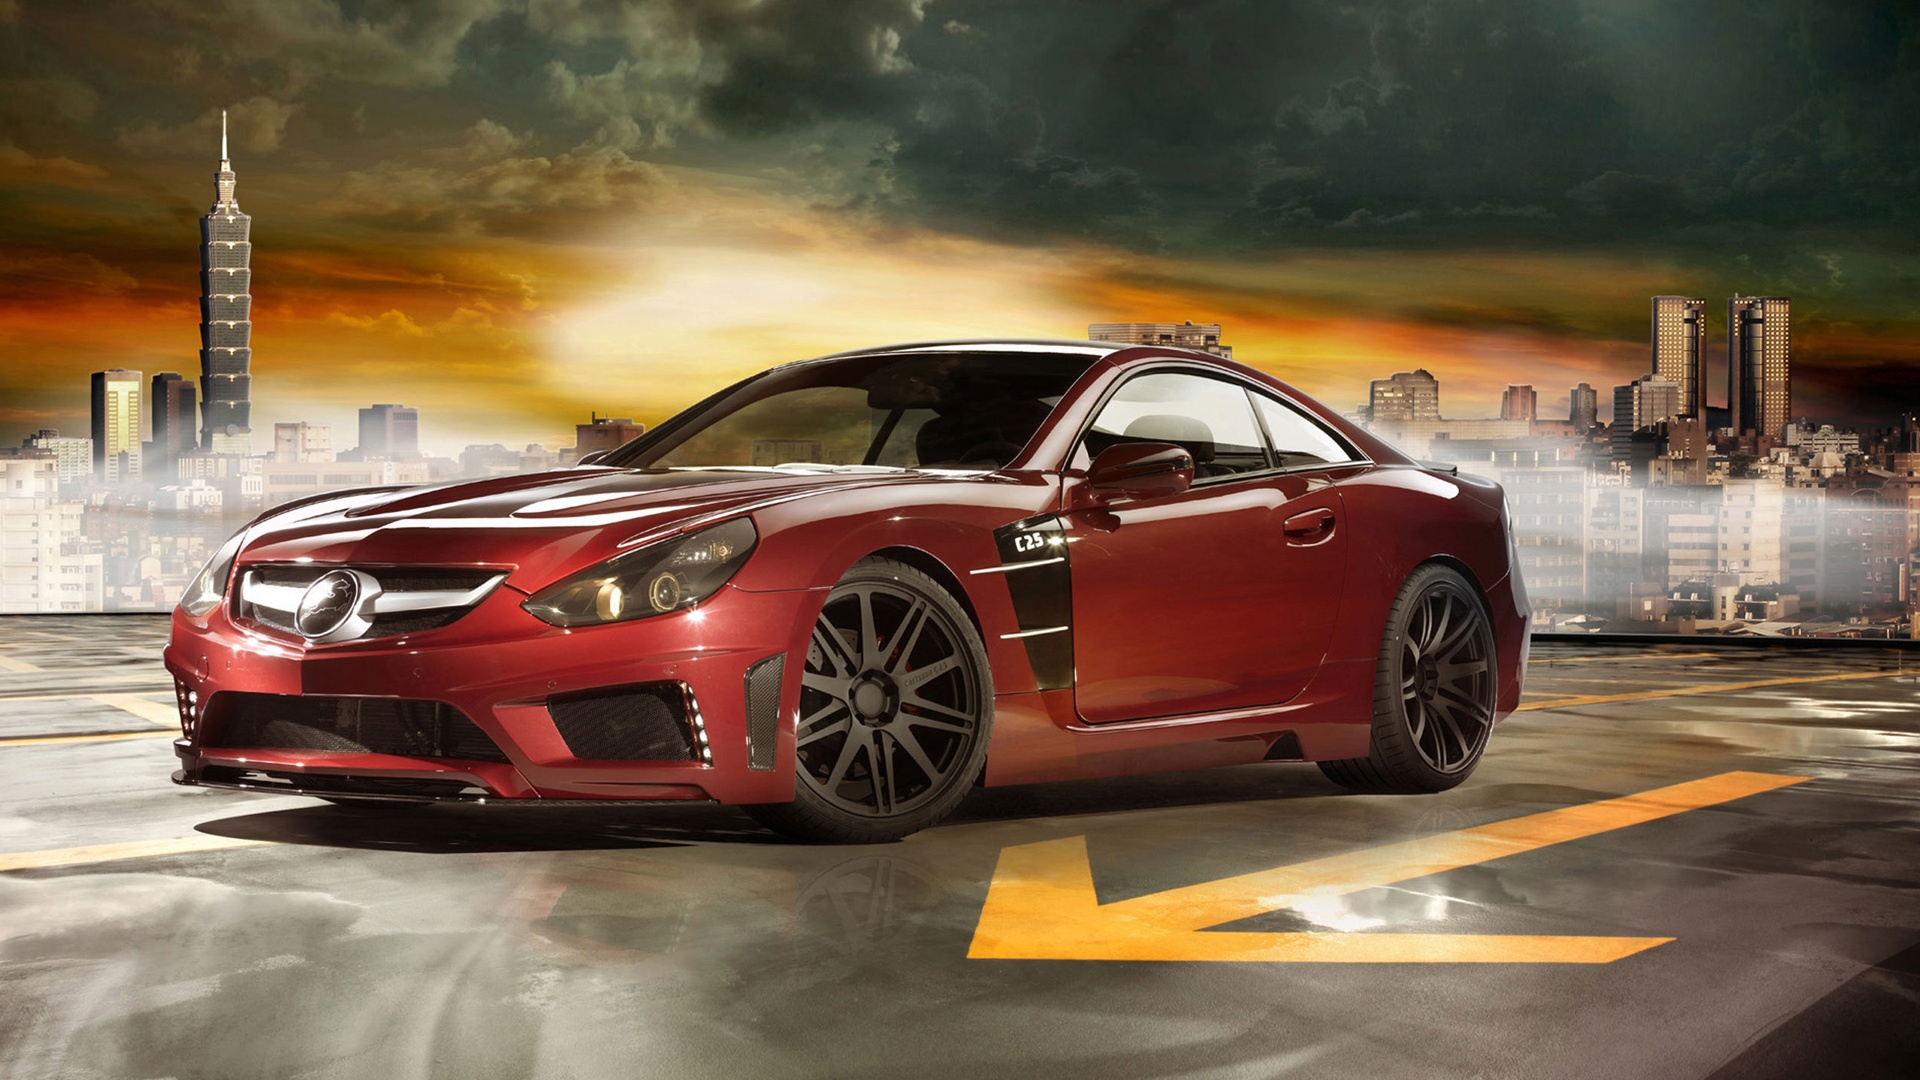 Mercedes Benz Carlsson C25 Super GT